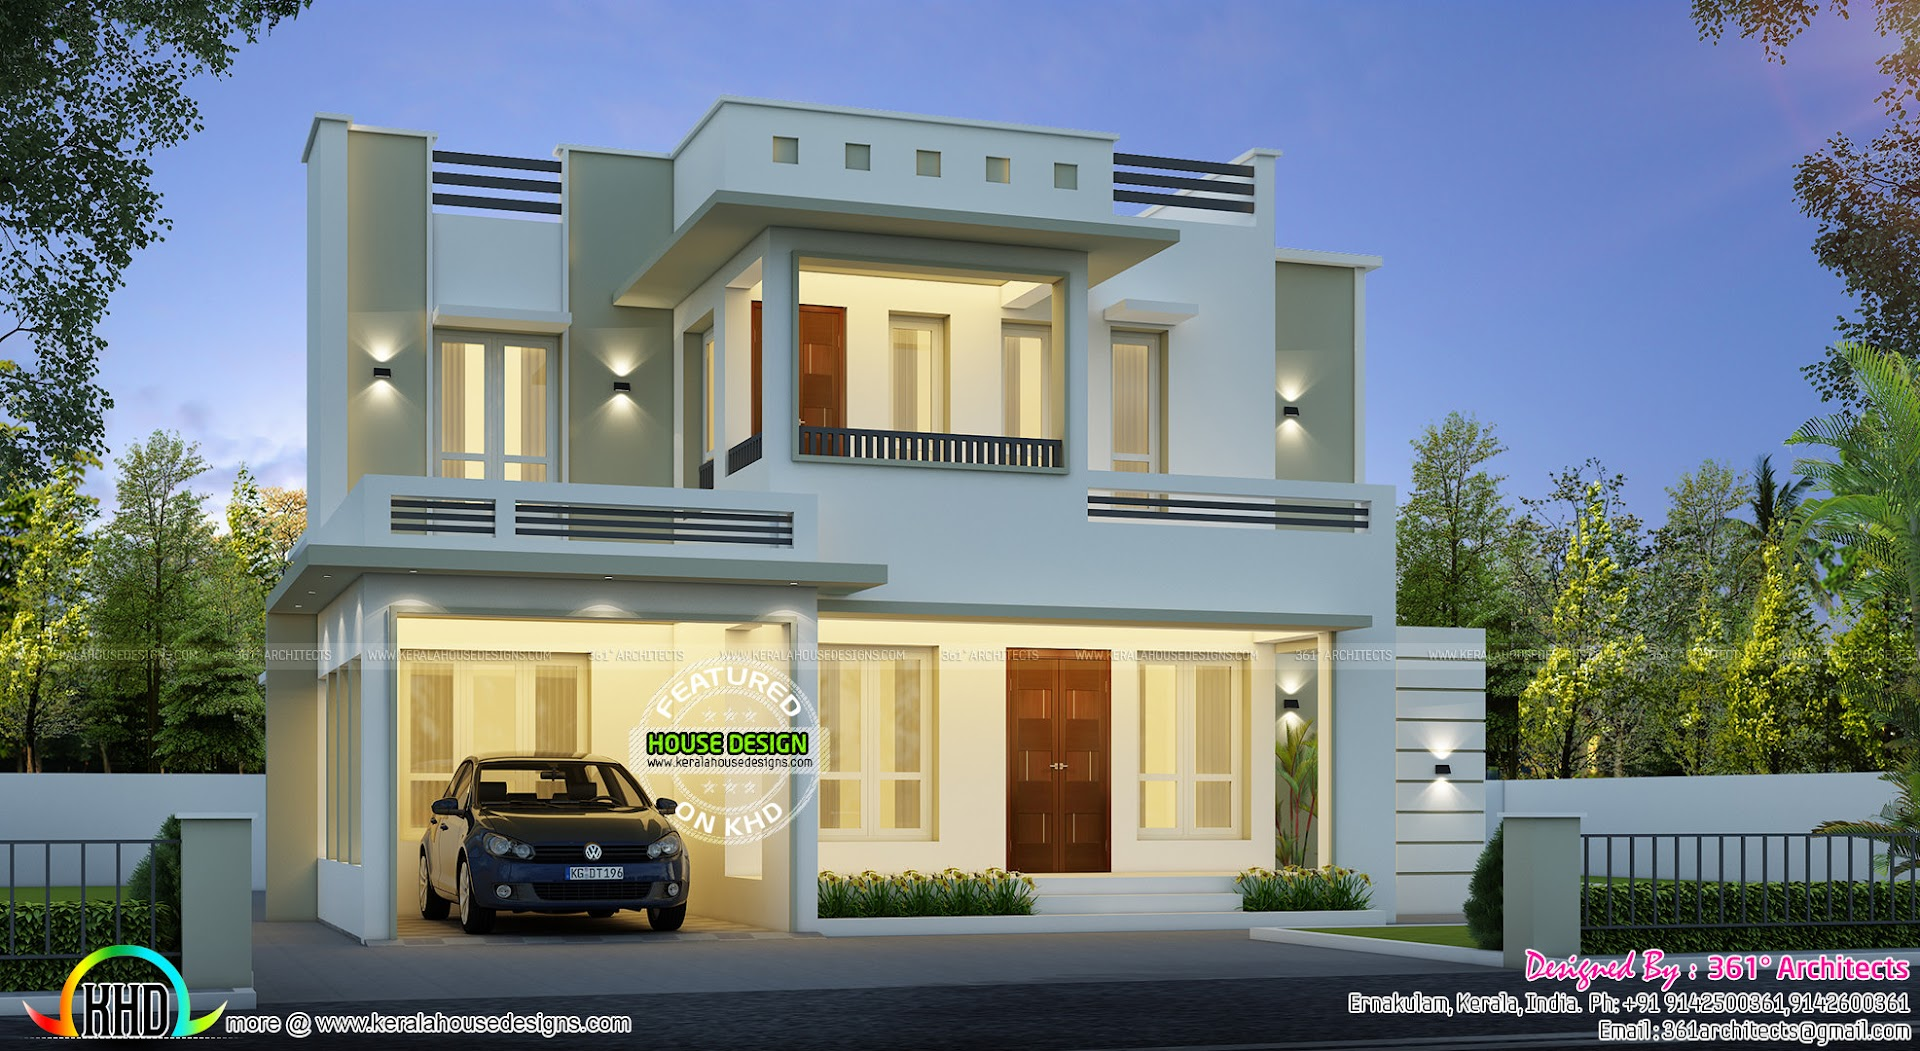 Home Design 2016 beautiful contemporary house design 2016 Construction Cost Rs2800000 42000 May Change Time To Time And Place To Place Design Style Contemporary